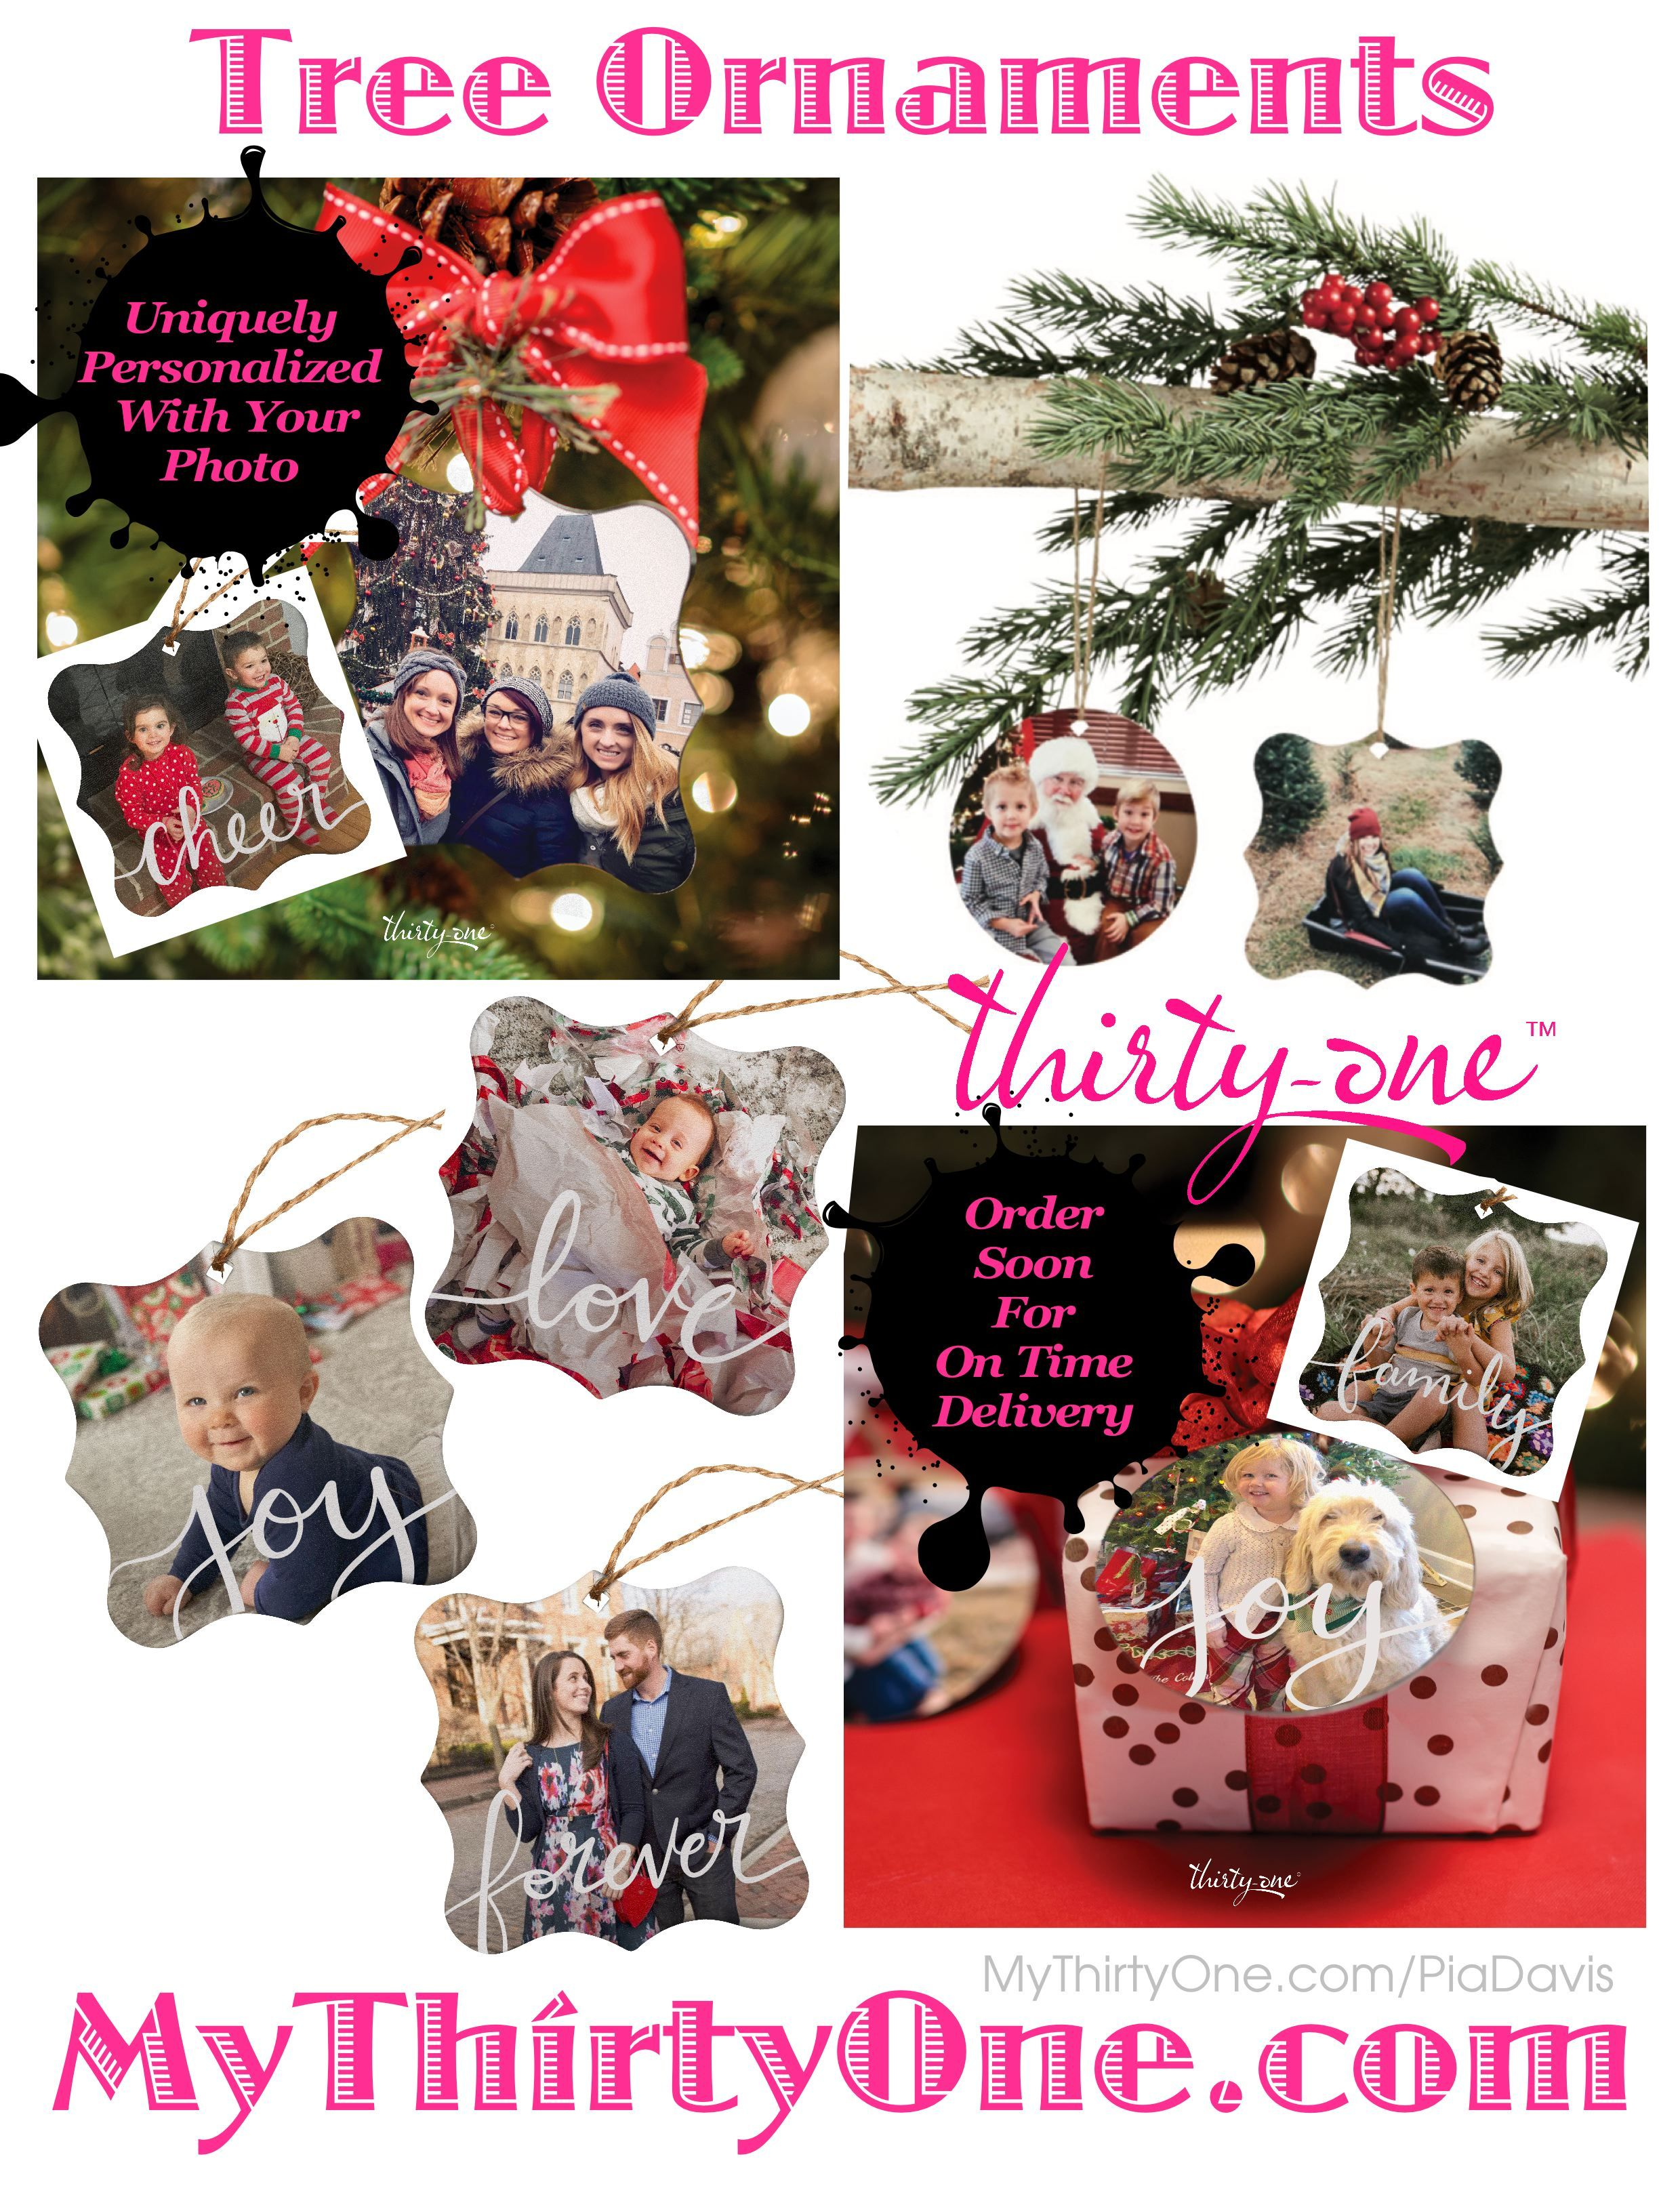 31 Photo Tree Ornaments Thirtyonegifts Personalize With Your Own Photos Photo Christmas Gifts Personalized Photo Ornaments Thirty One Gifts Thirty One